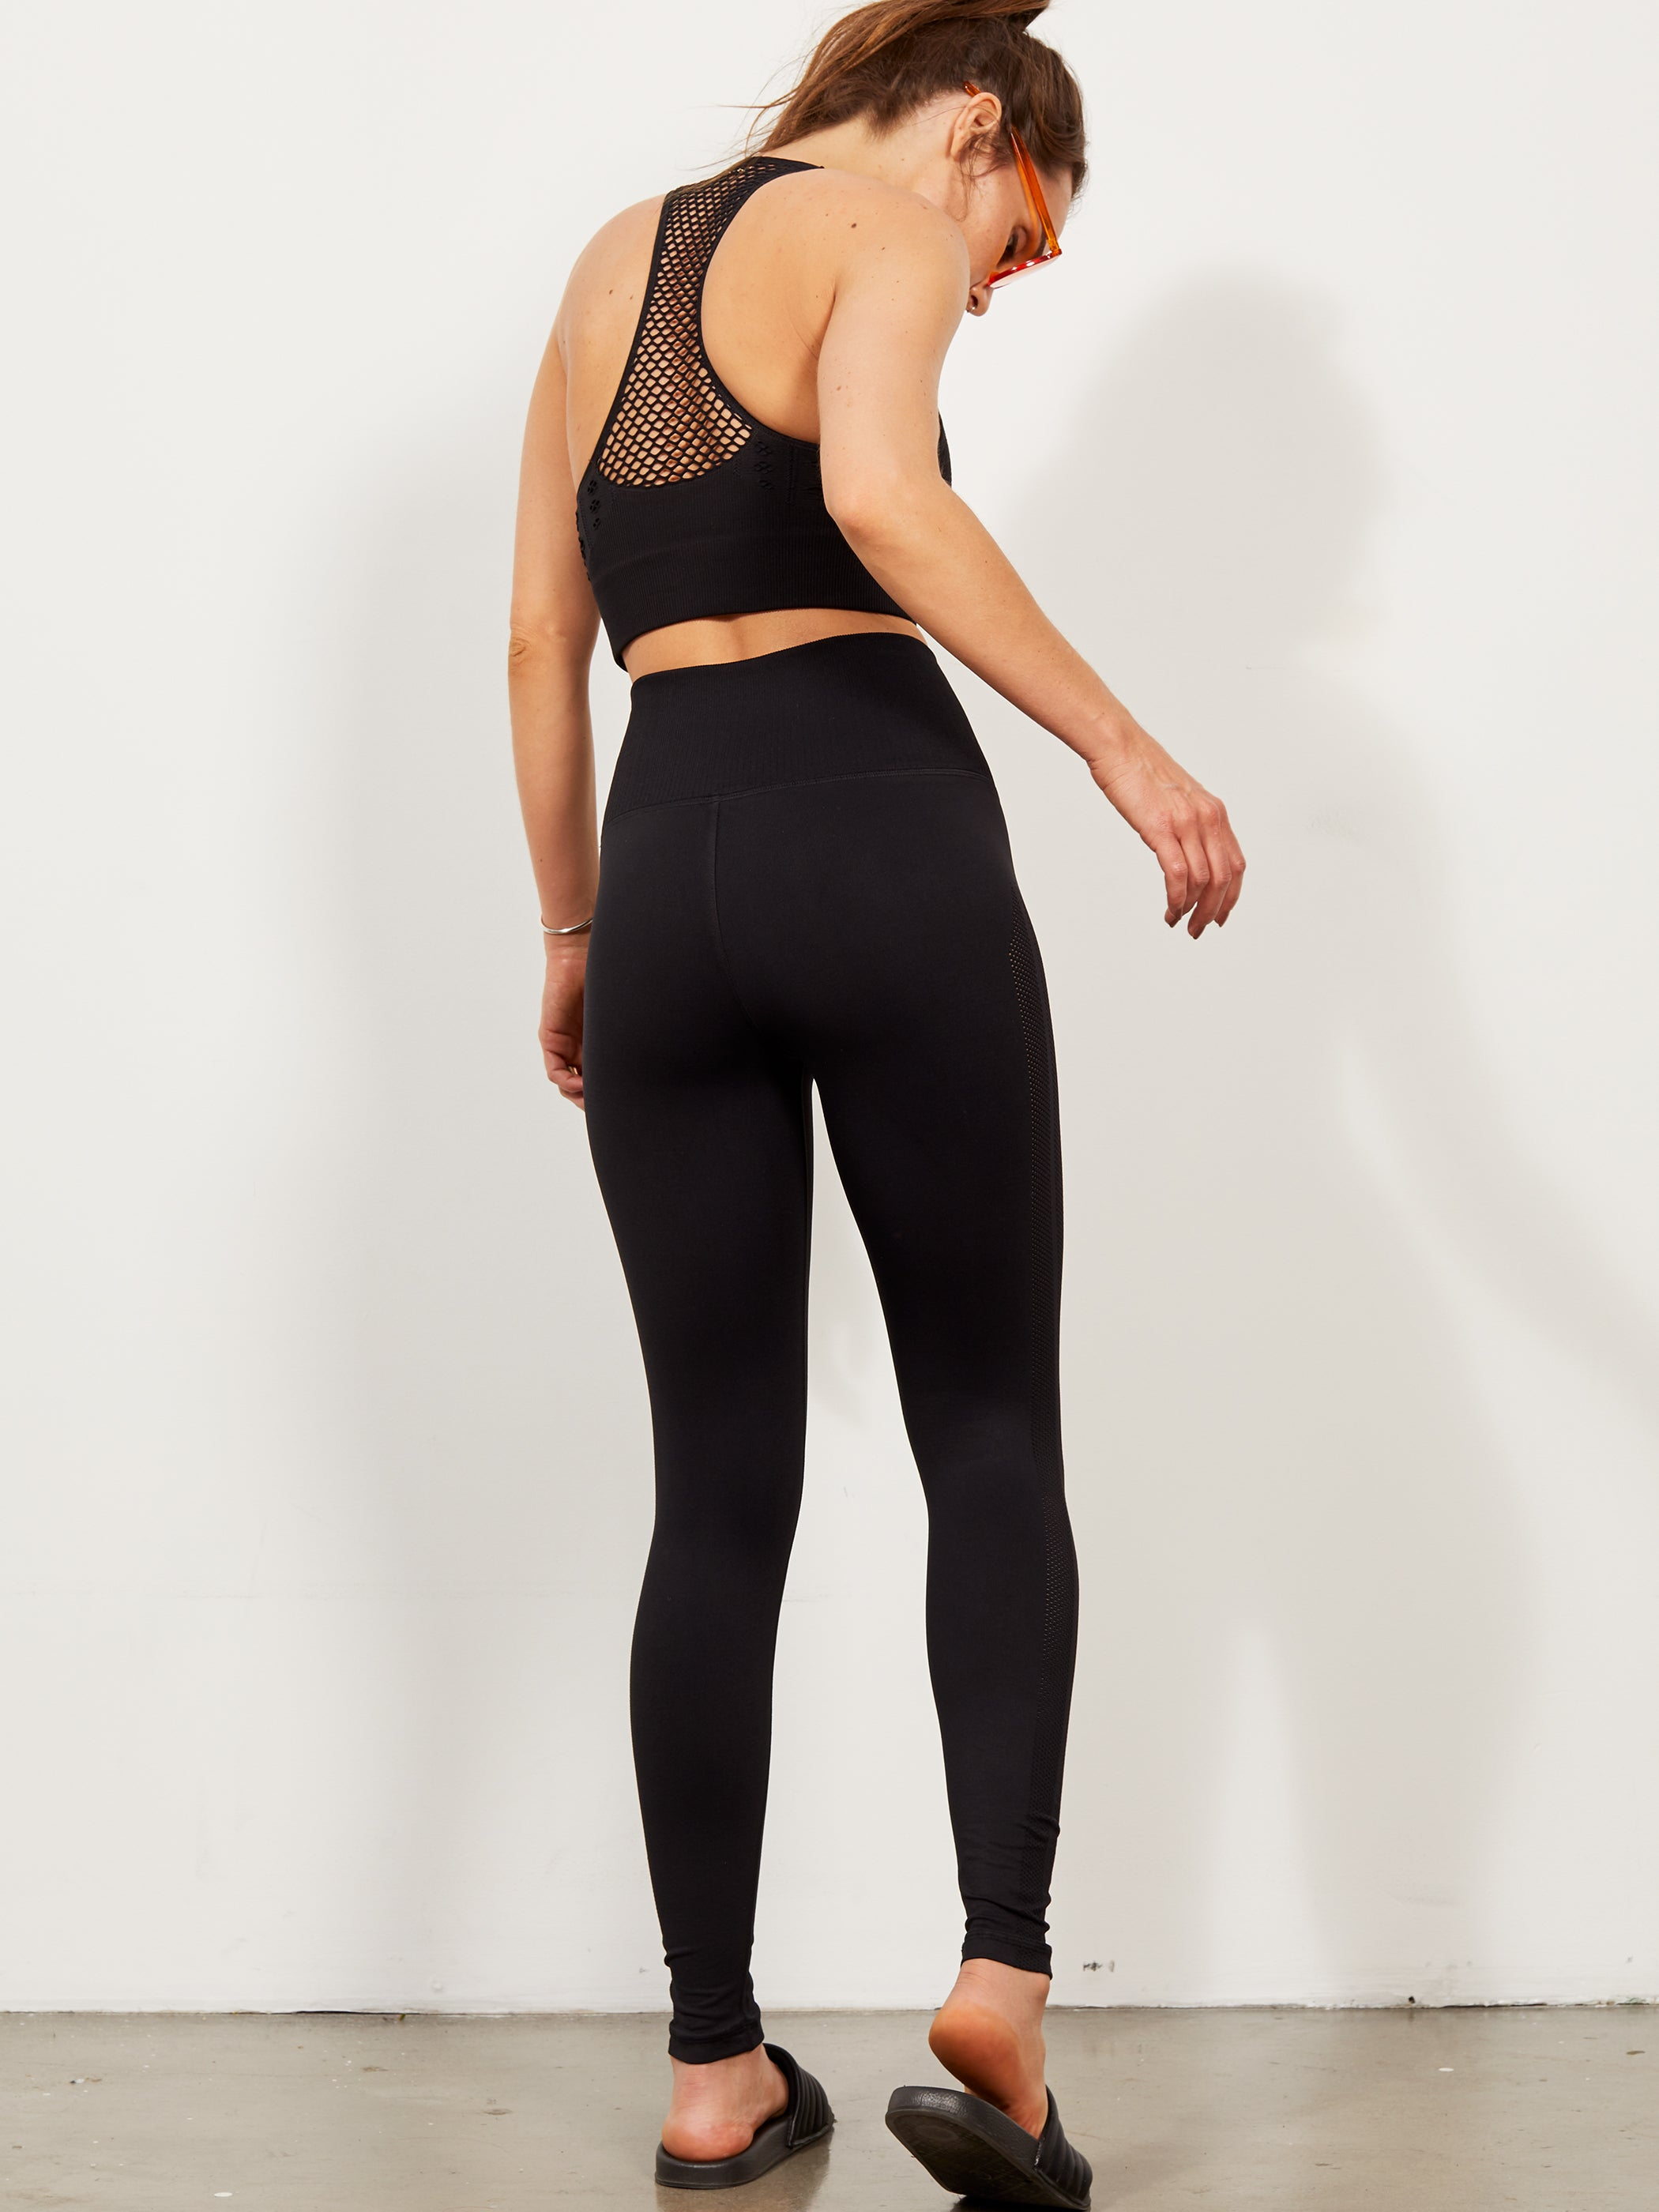 Unforgettable Leggings in Black